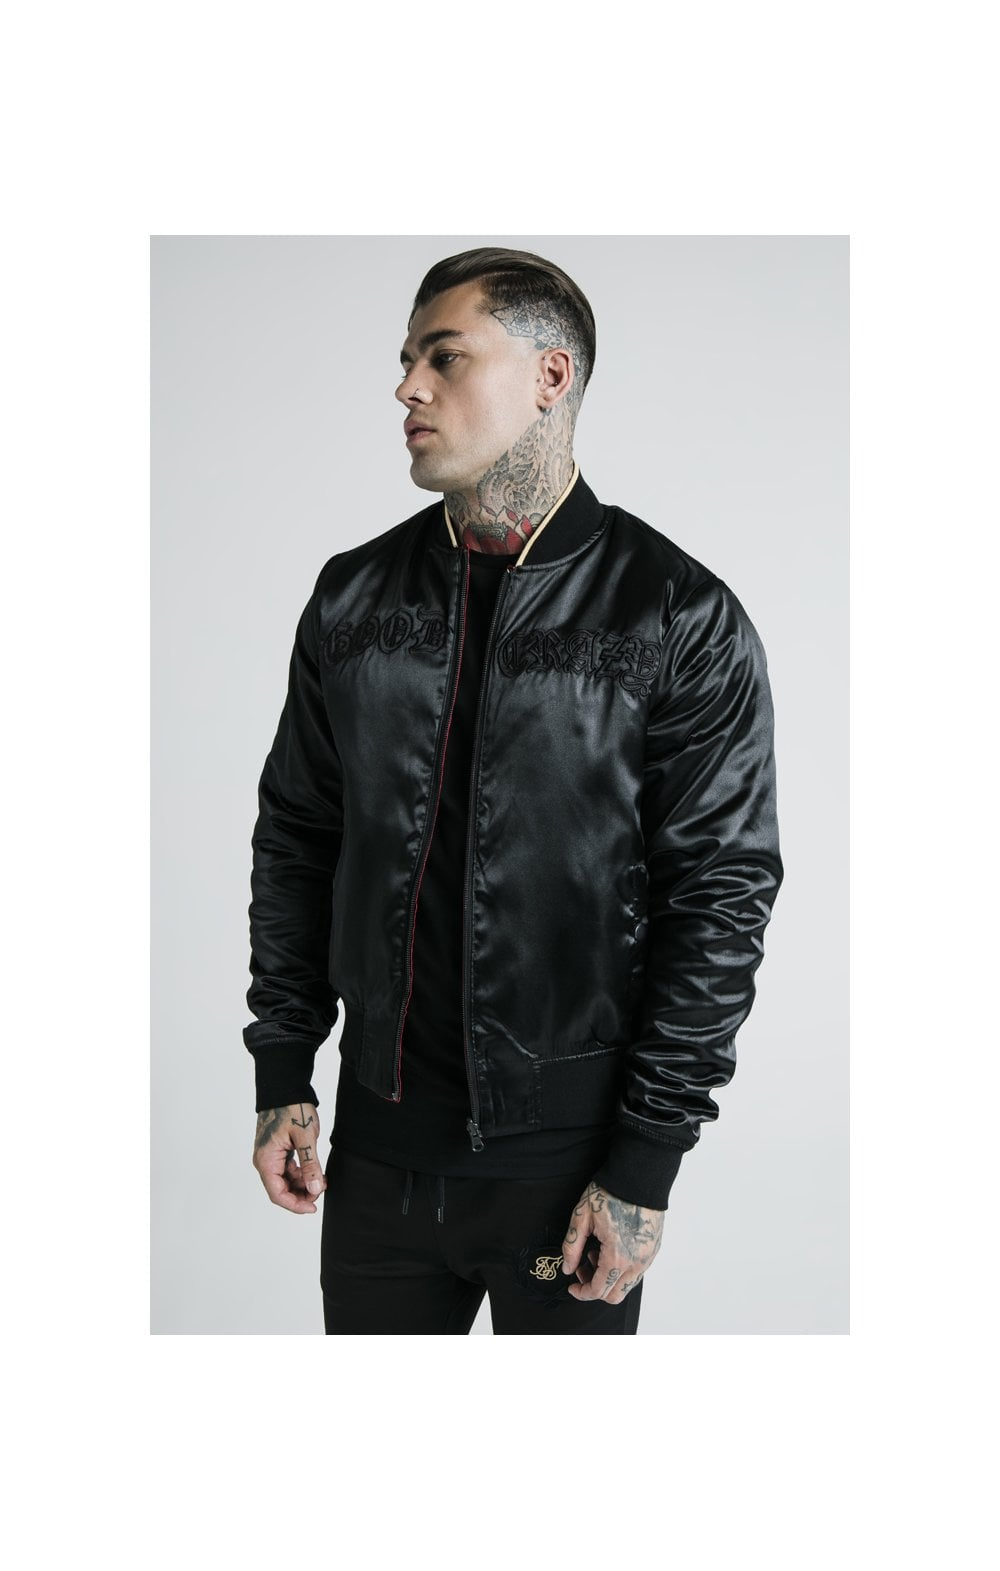 SikSilk X Dani Alves Reversible Bomber - Rosso Scuro & Nero (6)